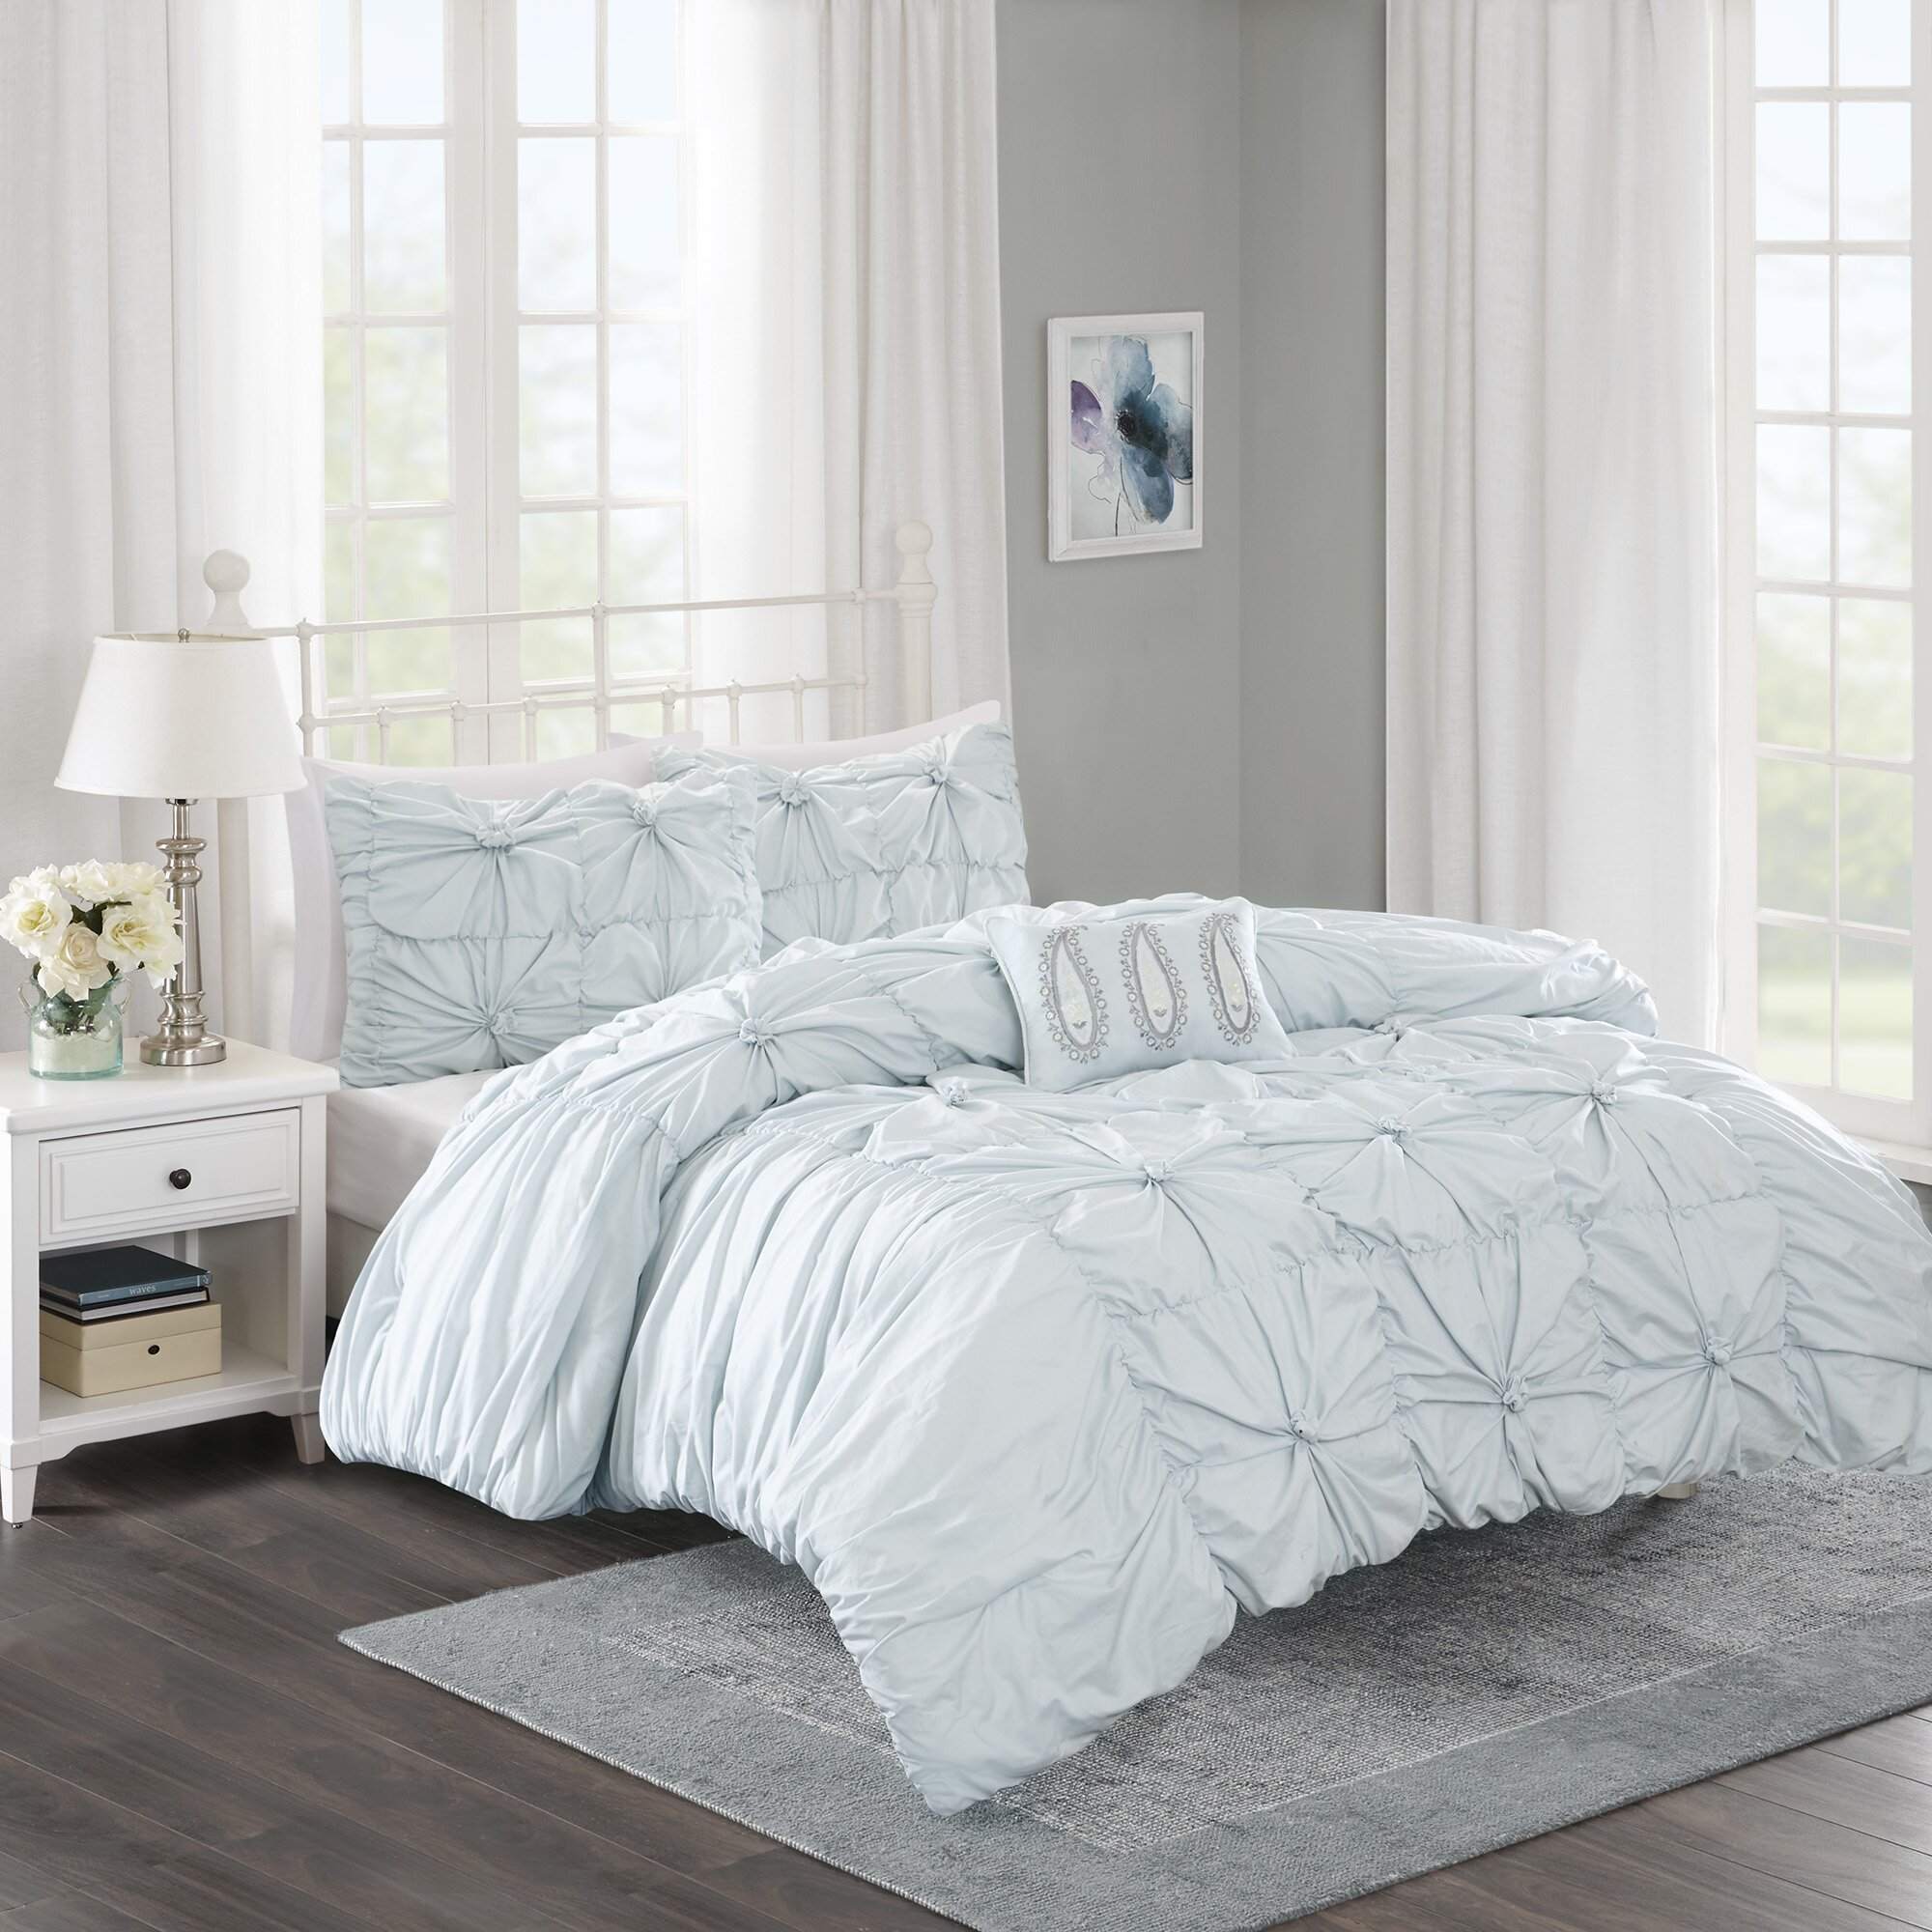 Madison park harlow 4 piece duvet cover set reviews for Beds harlow